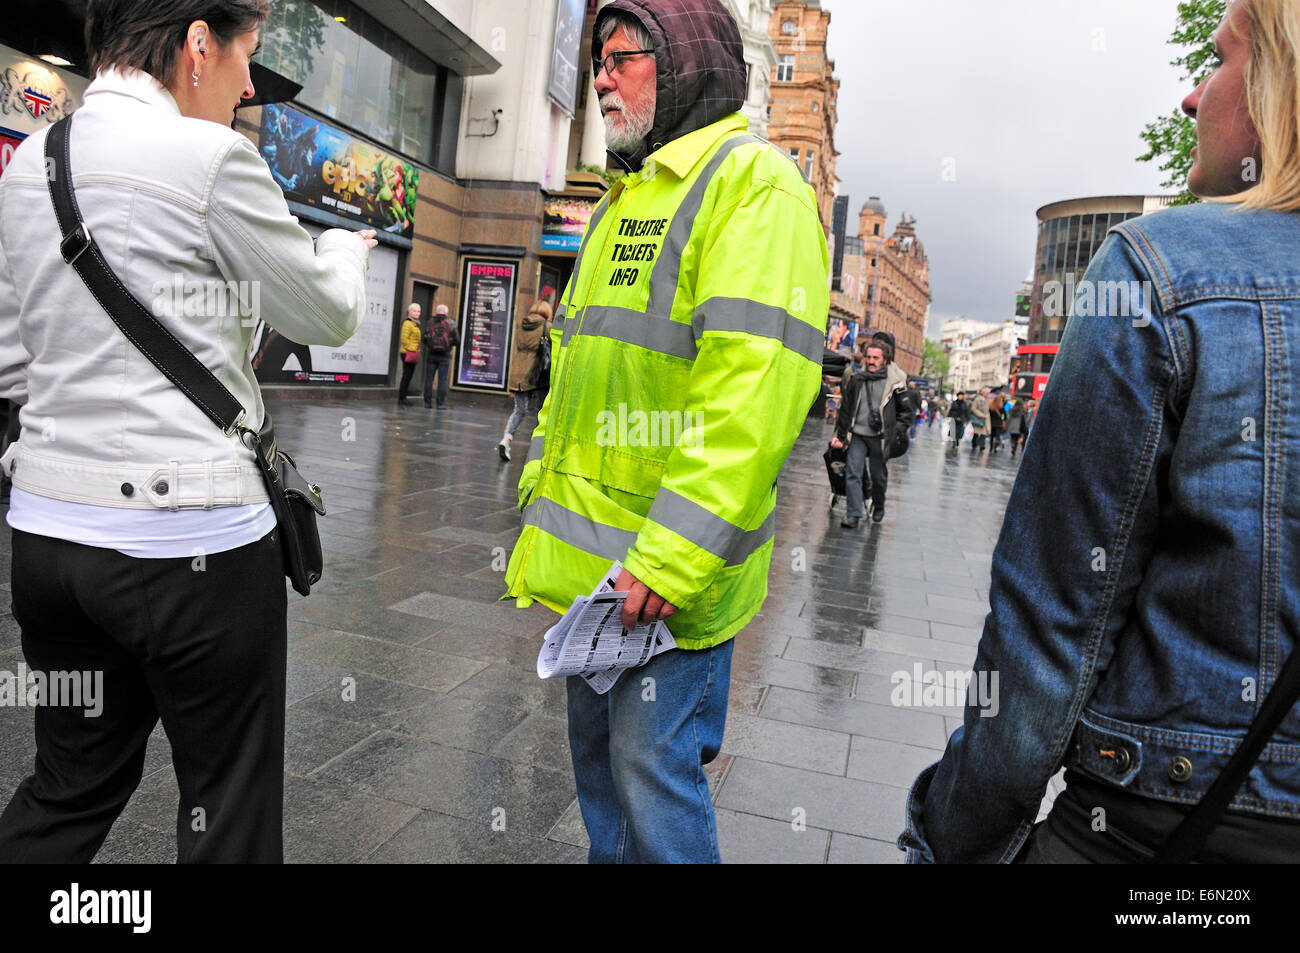 London, England, UK. Man with Theatre Information in Leicester Square in the rain - Stock Image